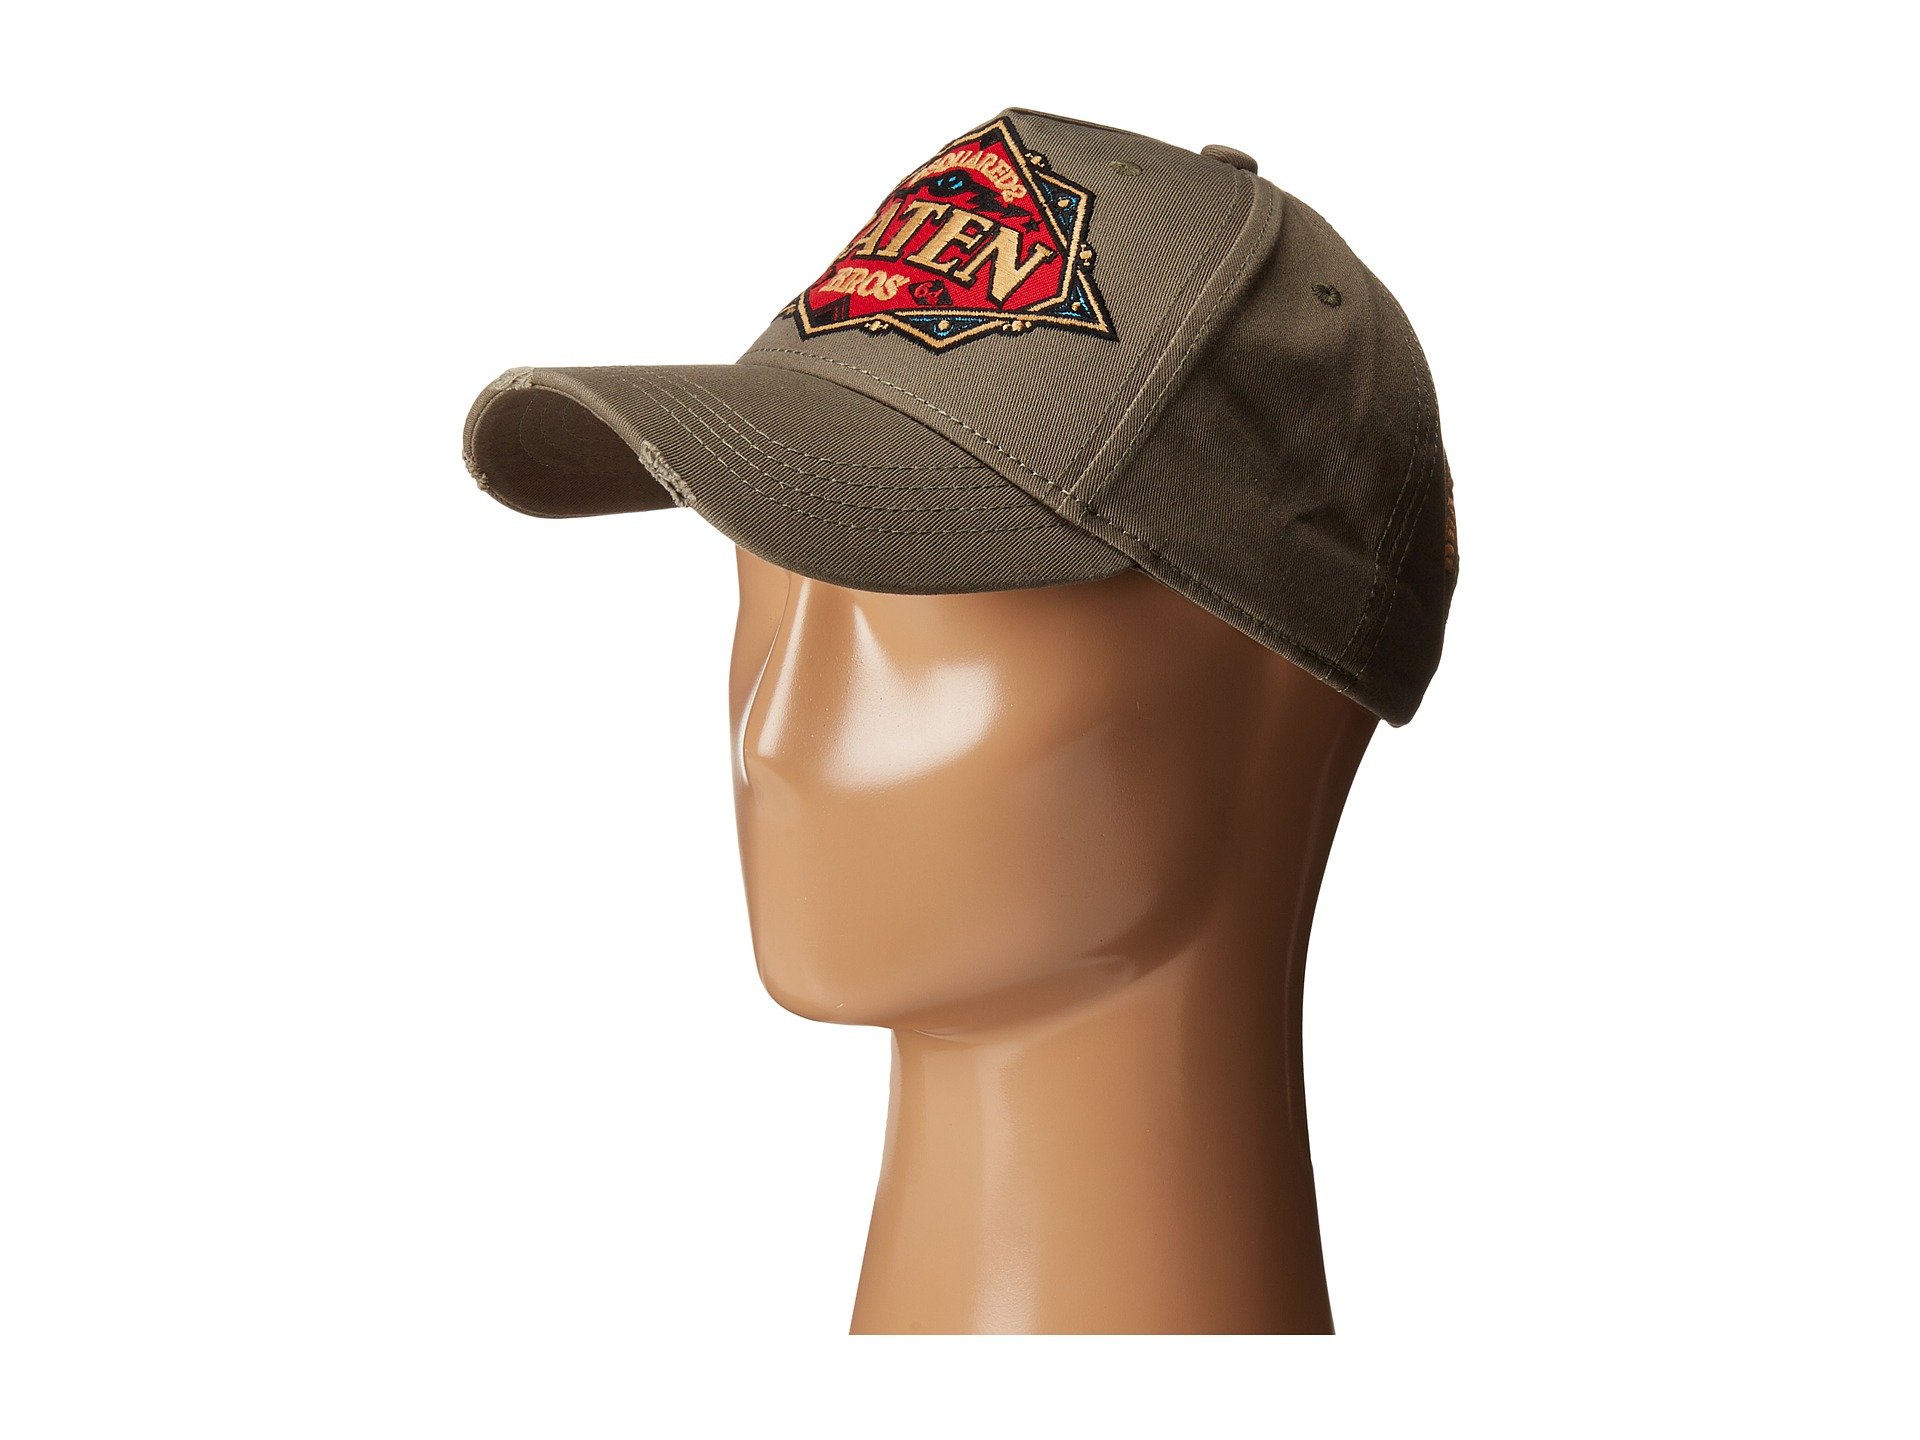 ed26cc37 DSquared² Caten Brothers Cap in Natural for Men - Lyst